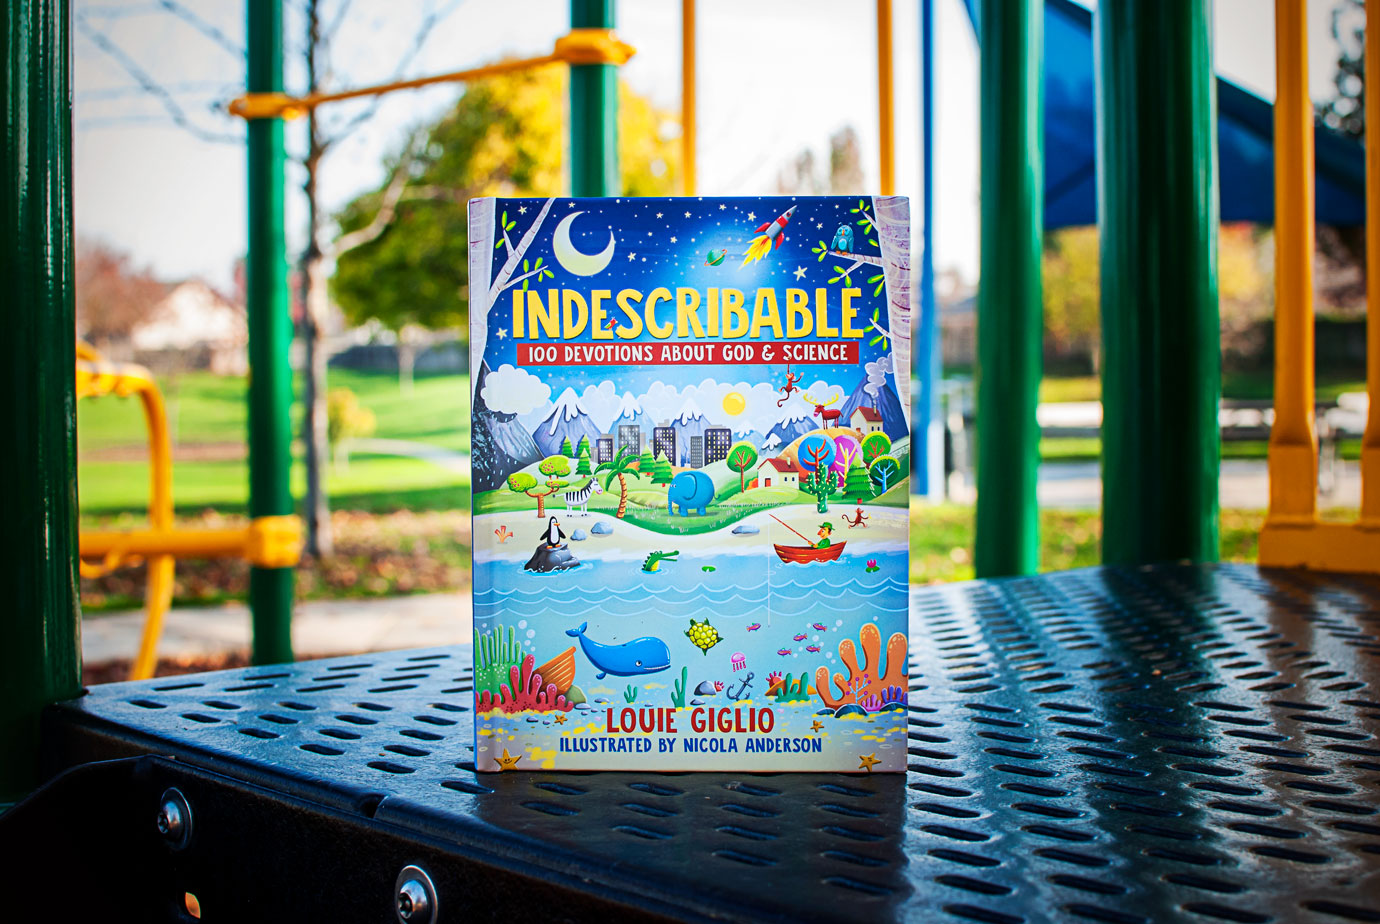 Indescribable 100 Devotions About God and Science For Kids